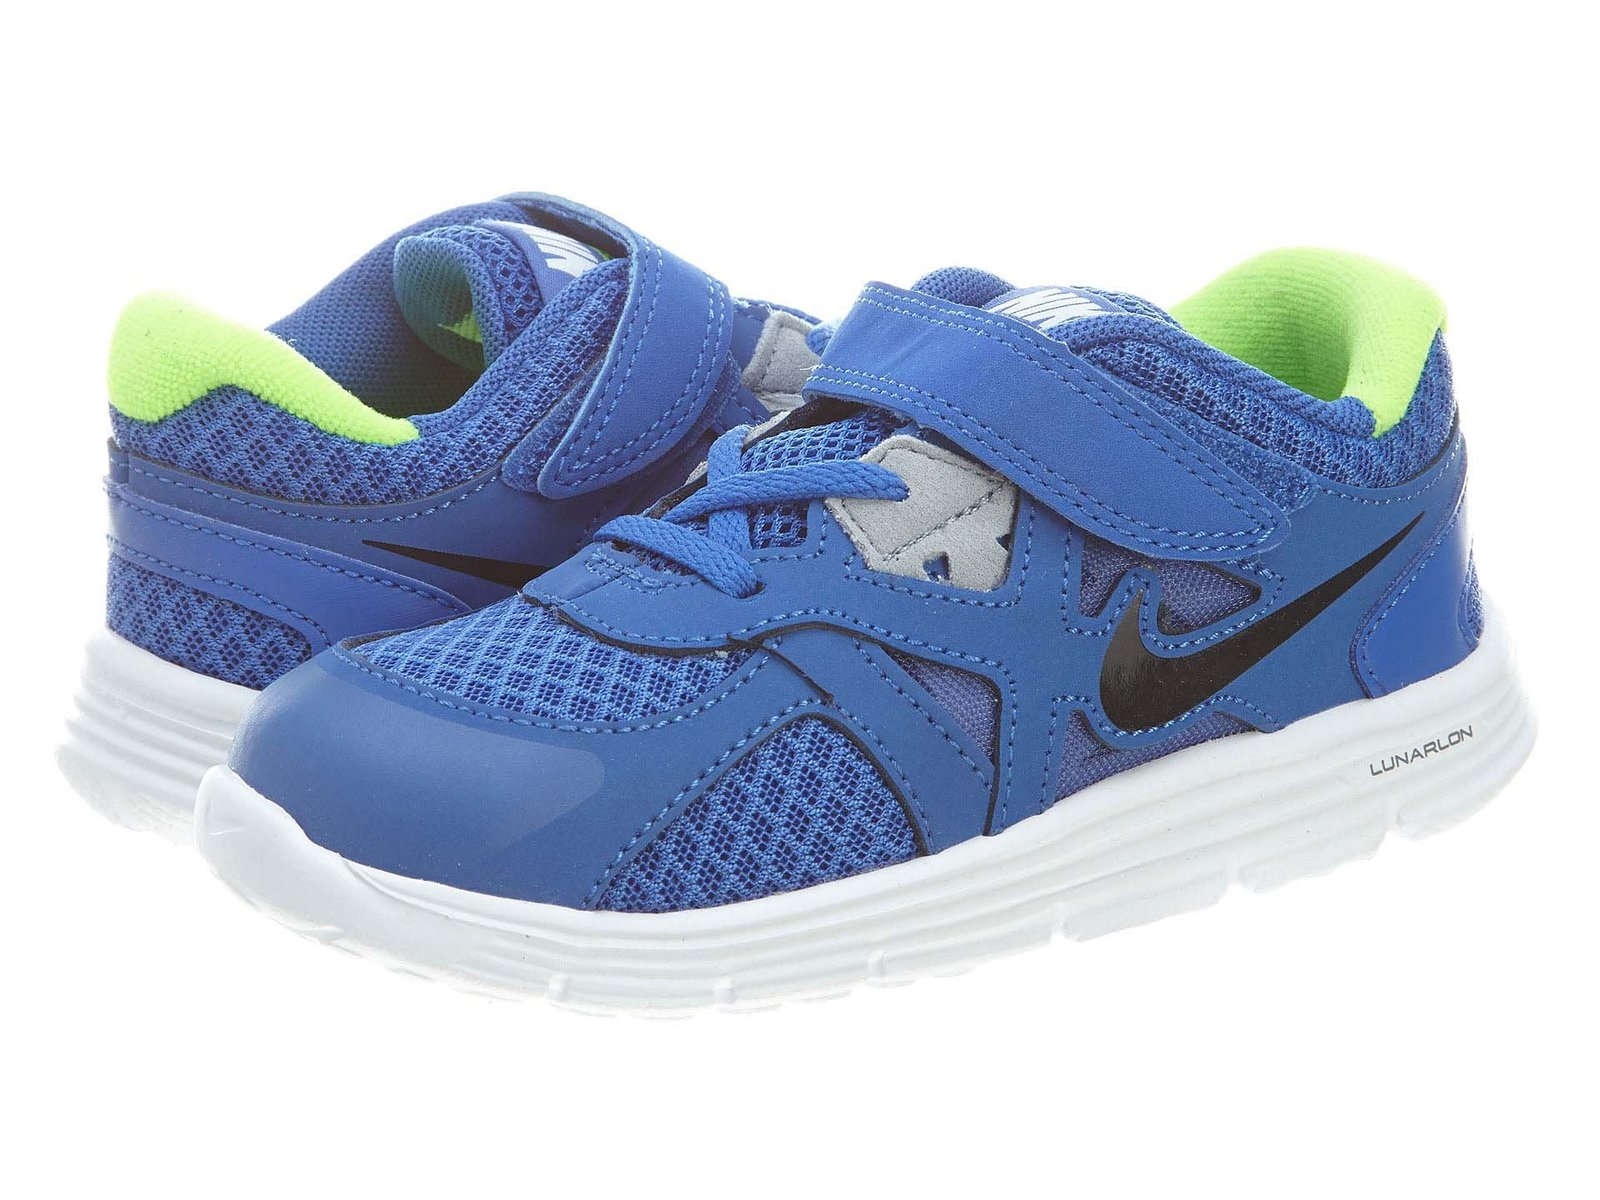 New Nike Lunarglide 3 Blue/White Baby Boys 4.5